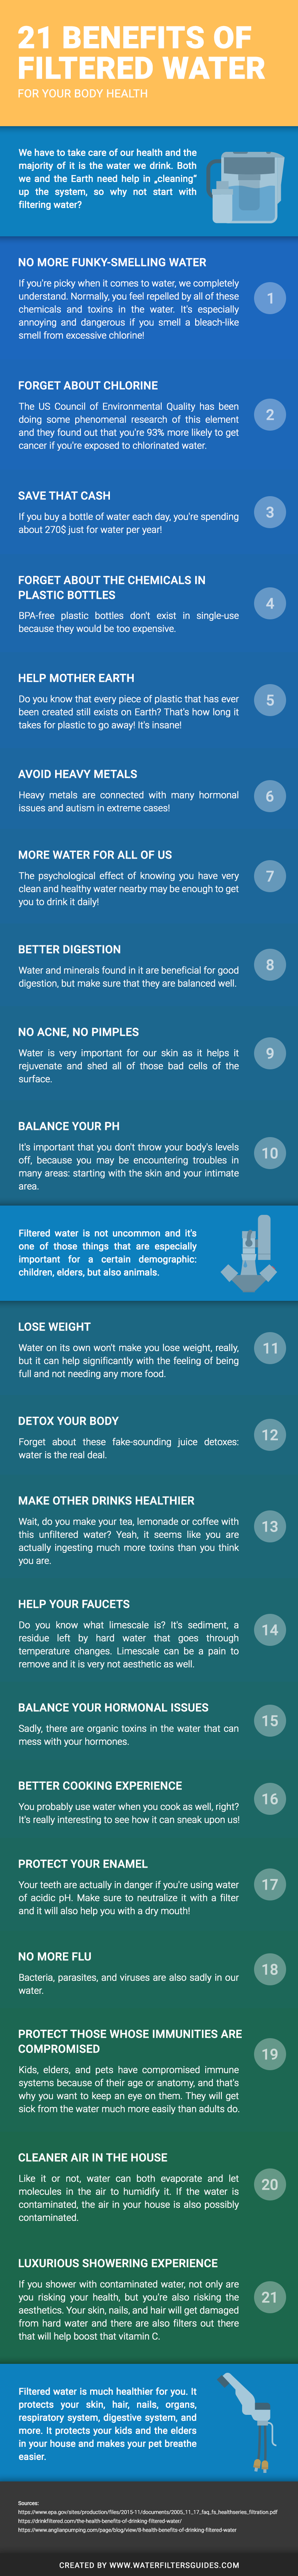 21 Benefits of Filtered Water #infographic